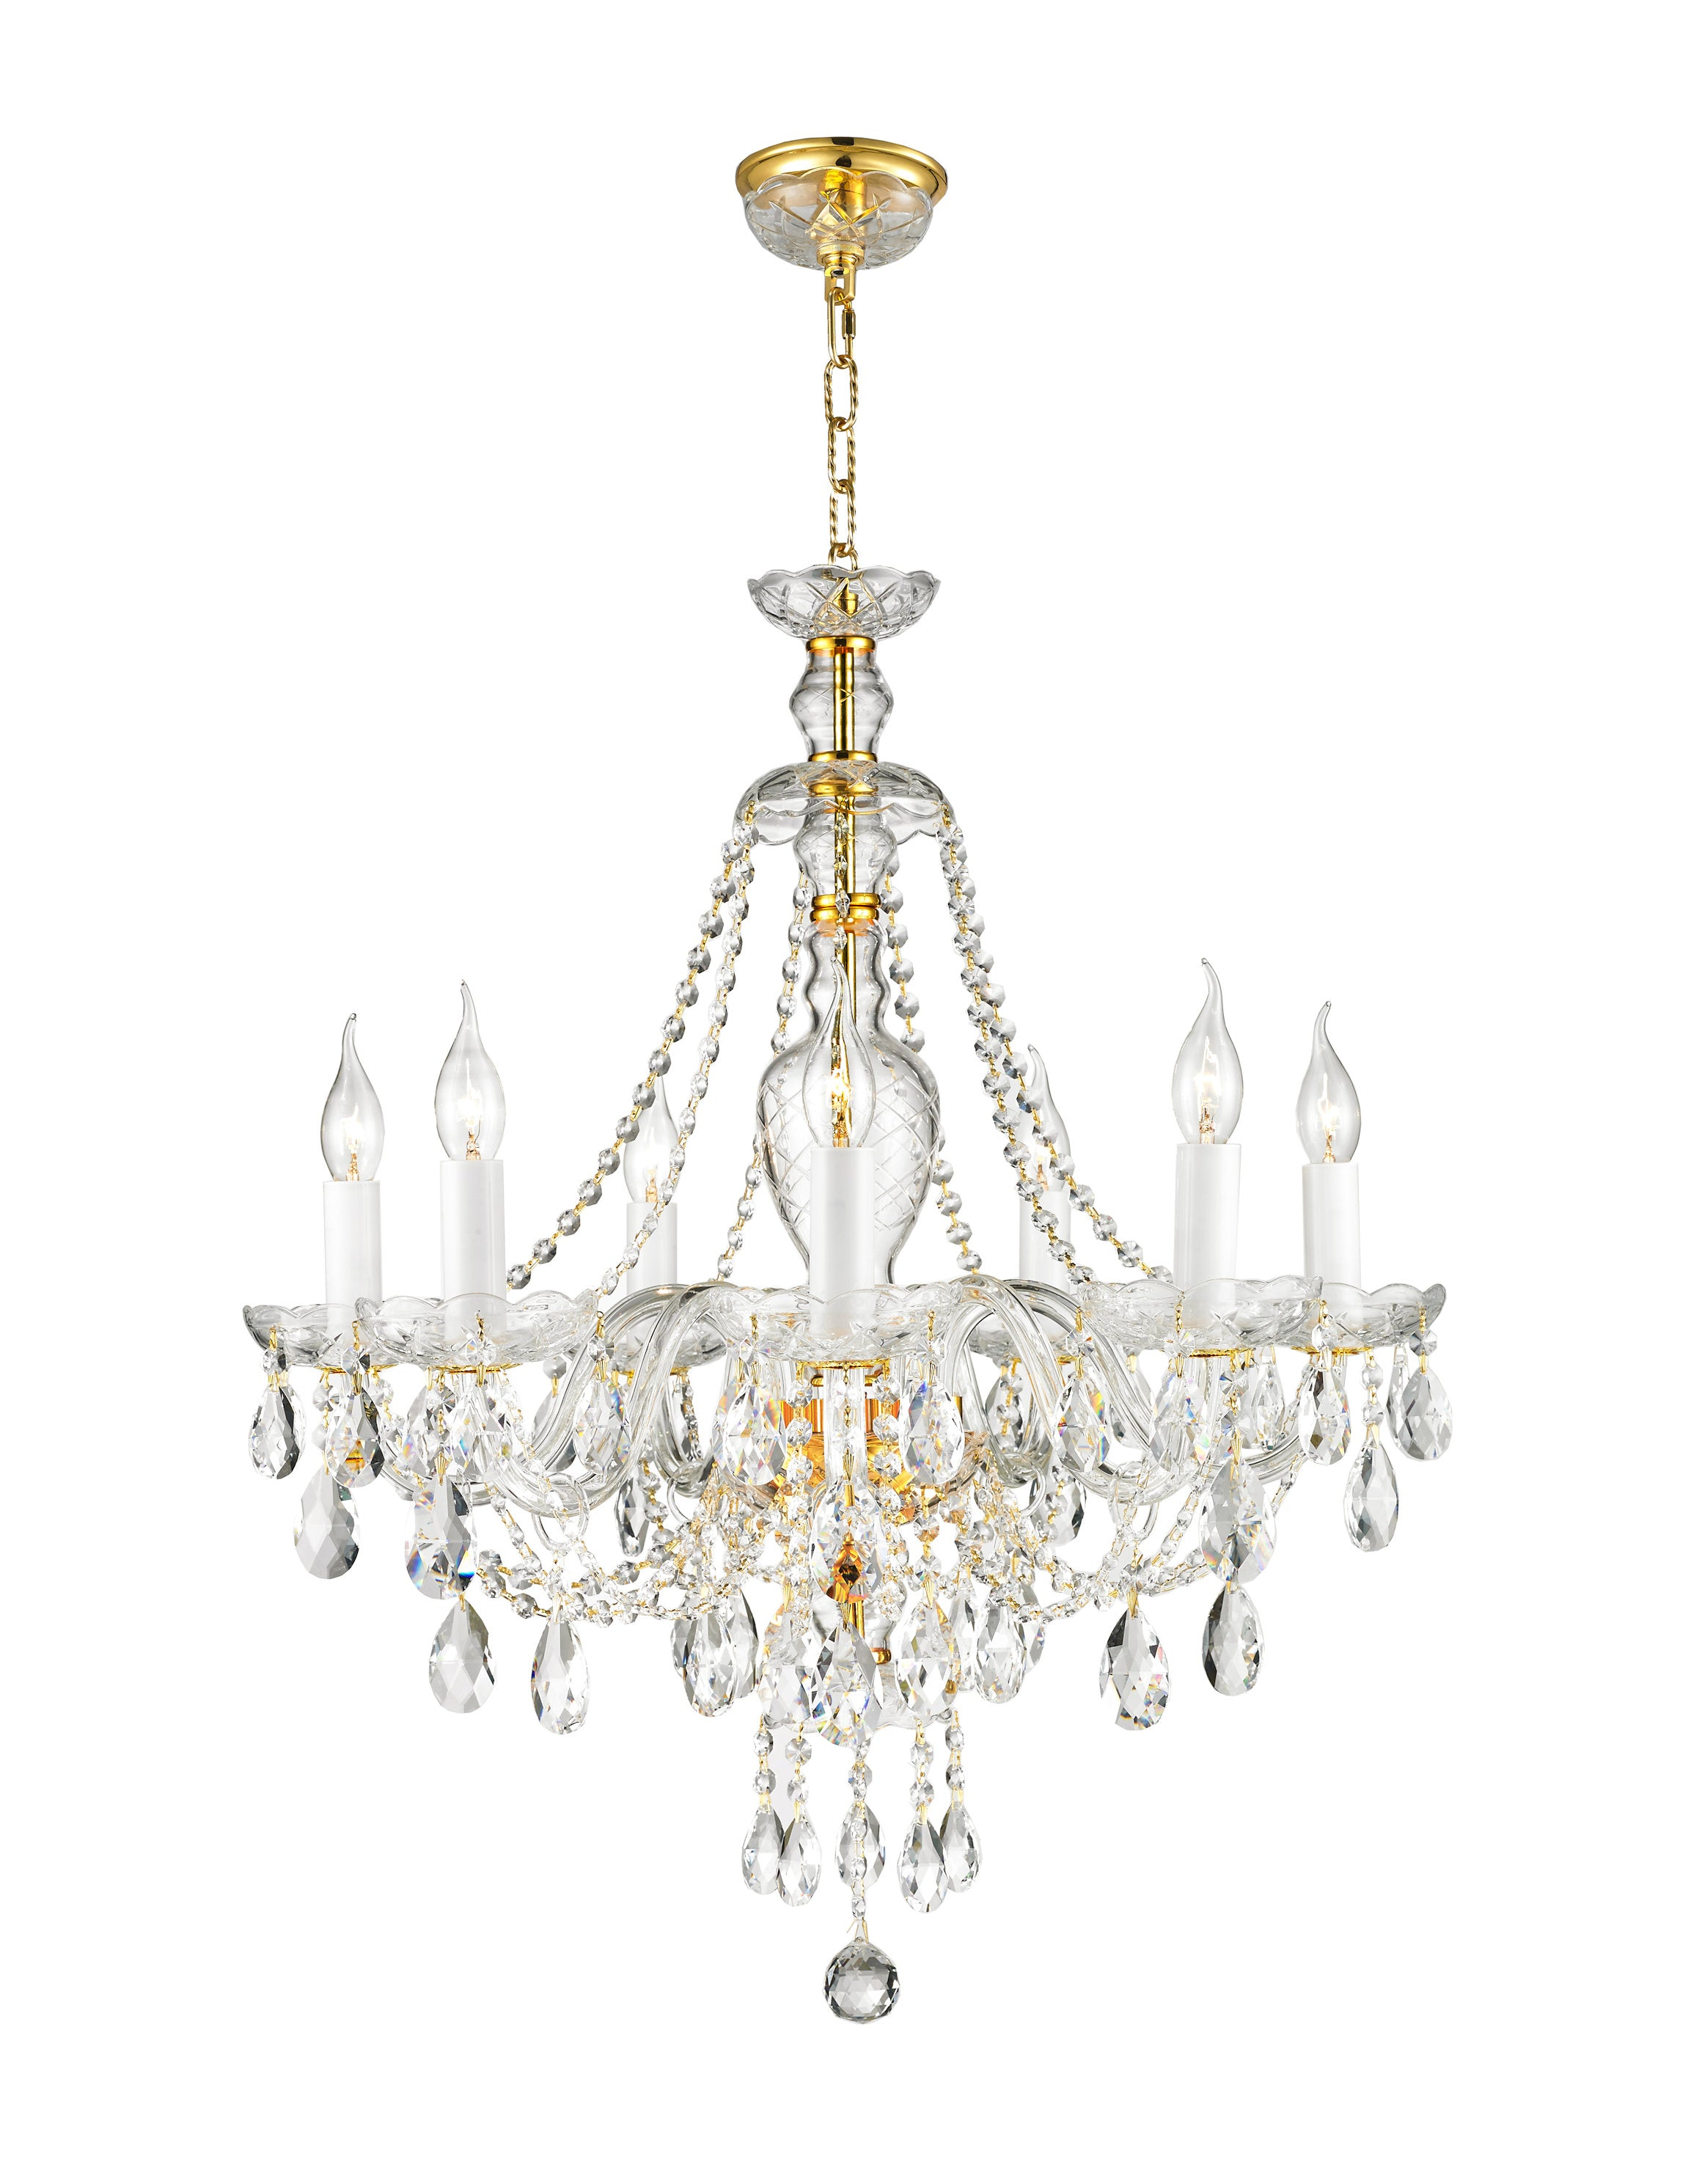 at furniture four chandelier master for sale bohemian pendant gasolier id tiered epoque cut and glass chandeliers gilt antique f style lights lighting belle